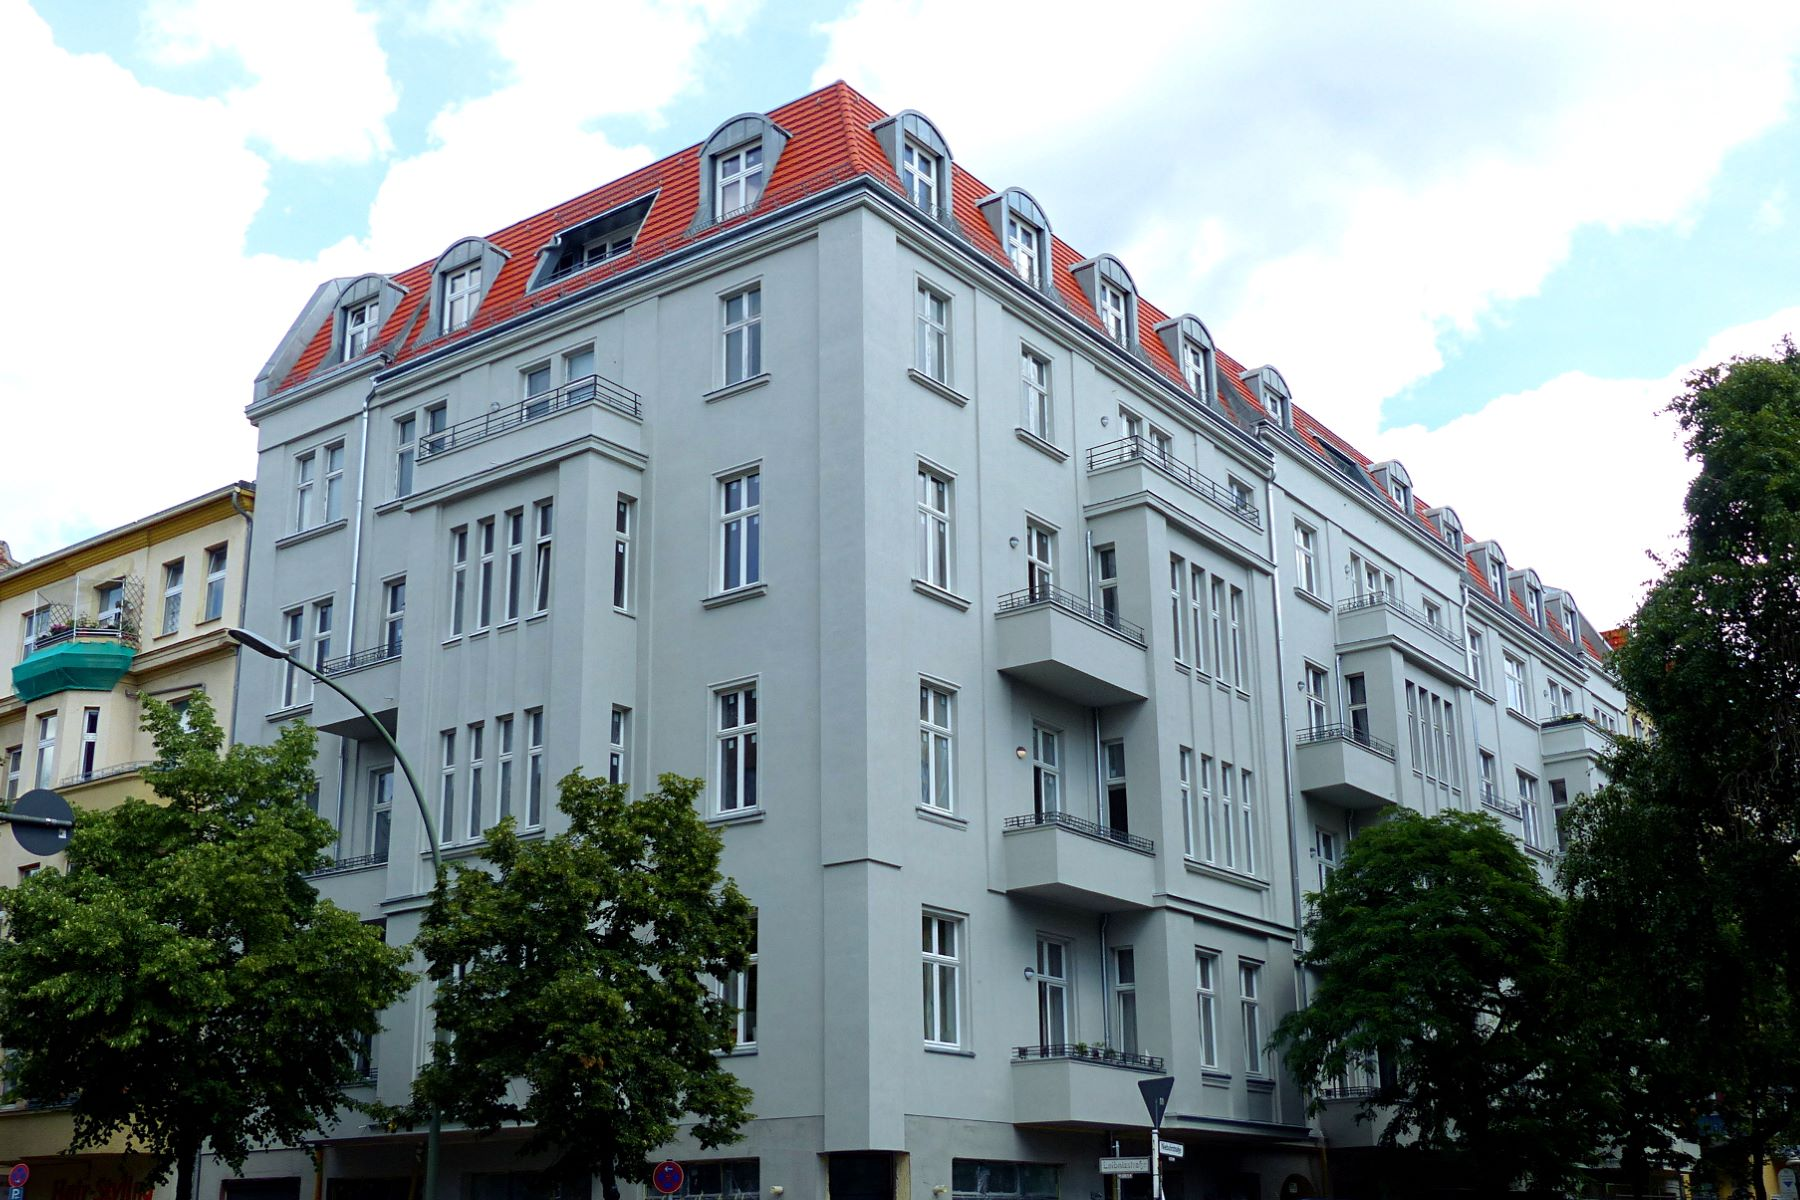 アパート のために 売買 アット Enchanting Penthouse with rooftop terrace in Charlottenburg! Berlin, ベルリン, 10629 ドイツ